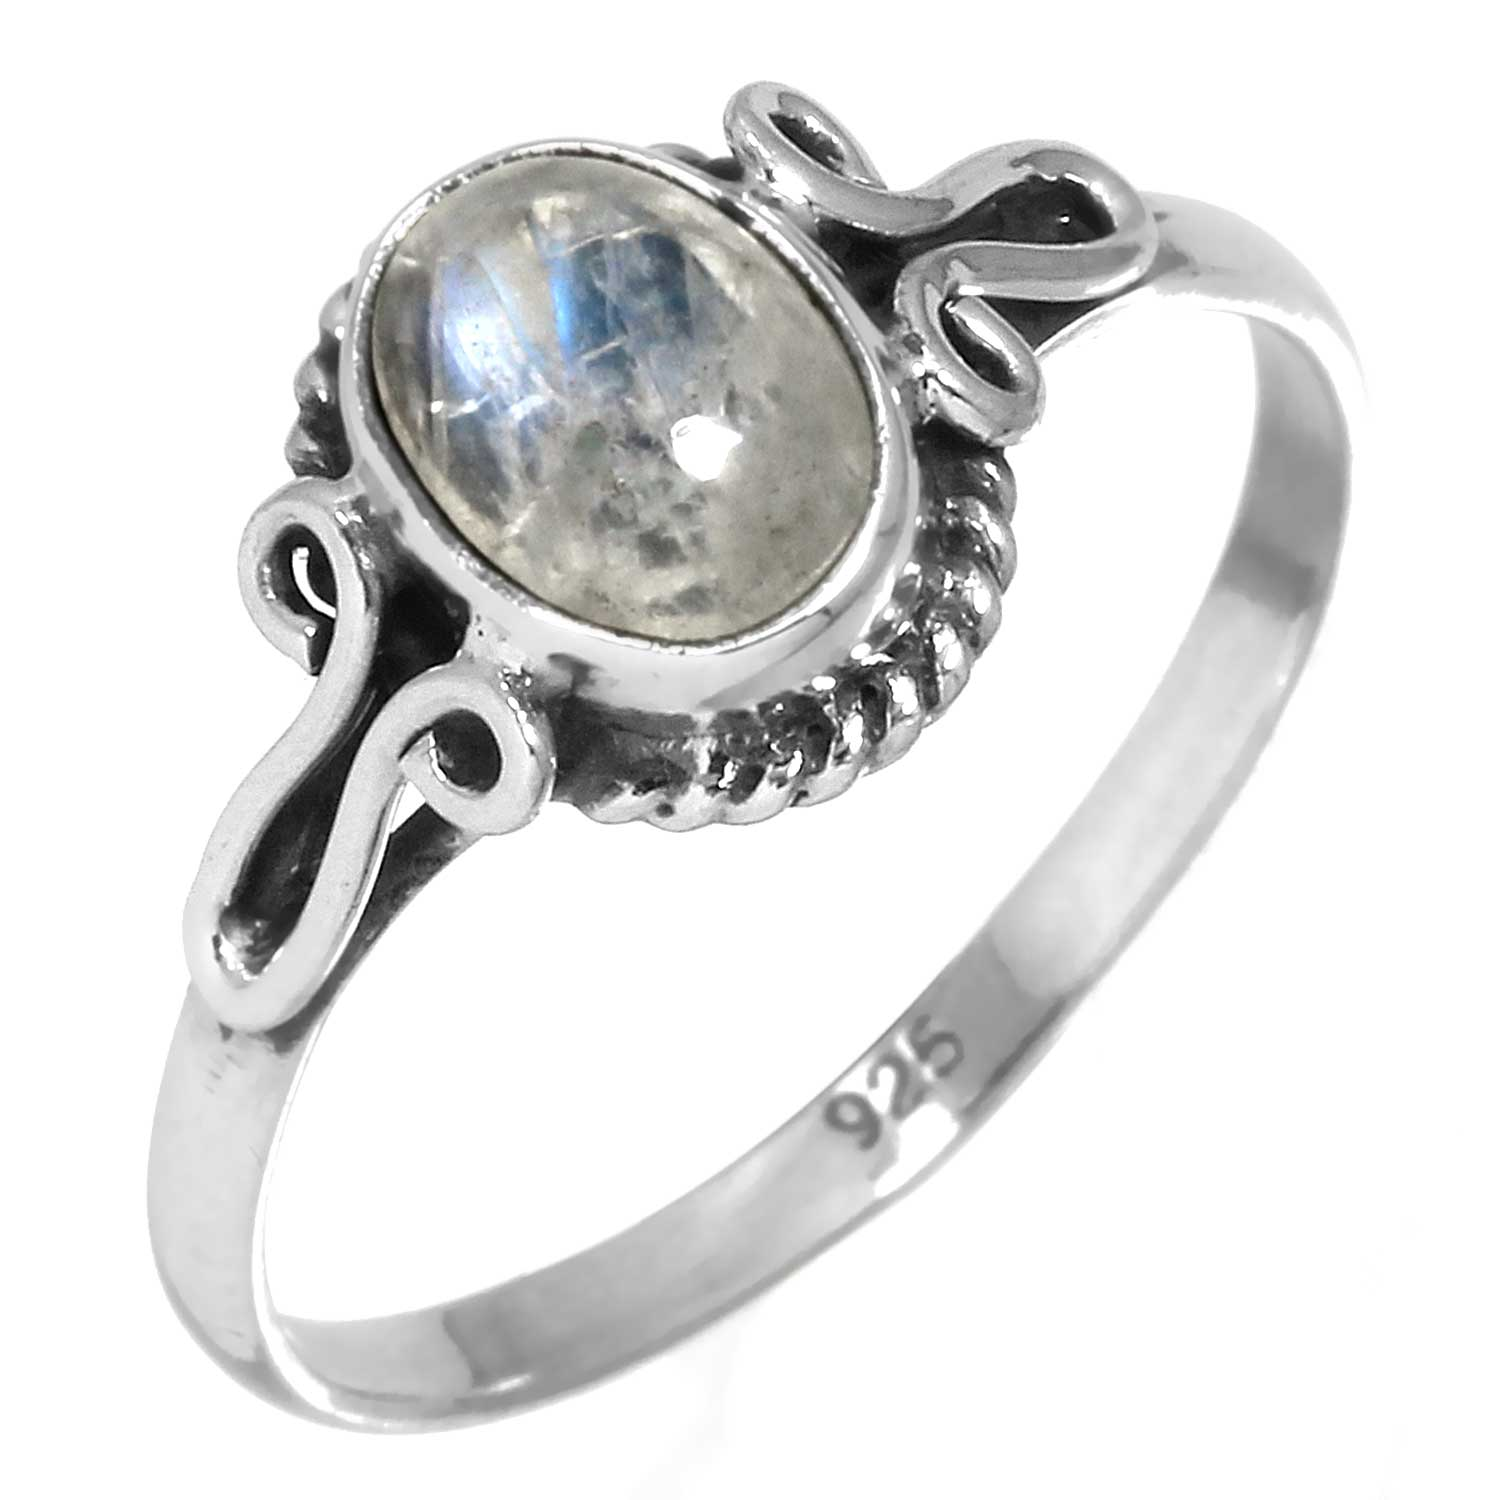 Sterling silver Rainbow Moonstone (9x12mm) Ring